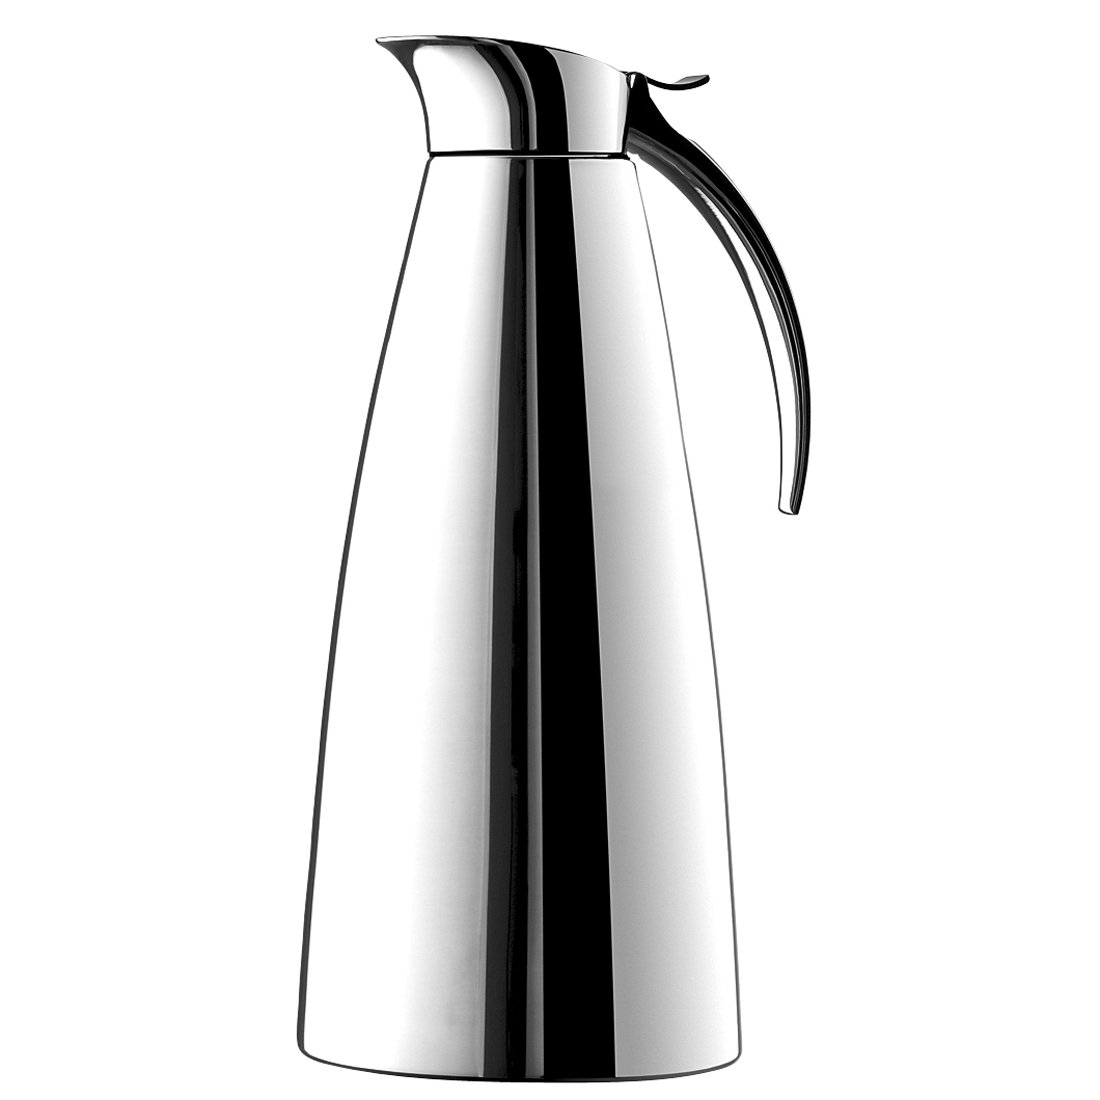 Emsa Eleganza Stainless Steel Insulated Carafe 44 Luxury Cookware Ampamp Elegenzia Set Ounce Carafes Pitchers